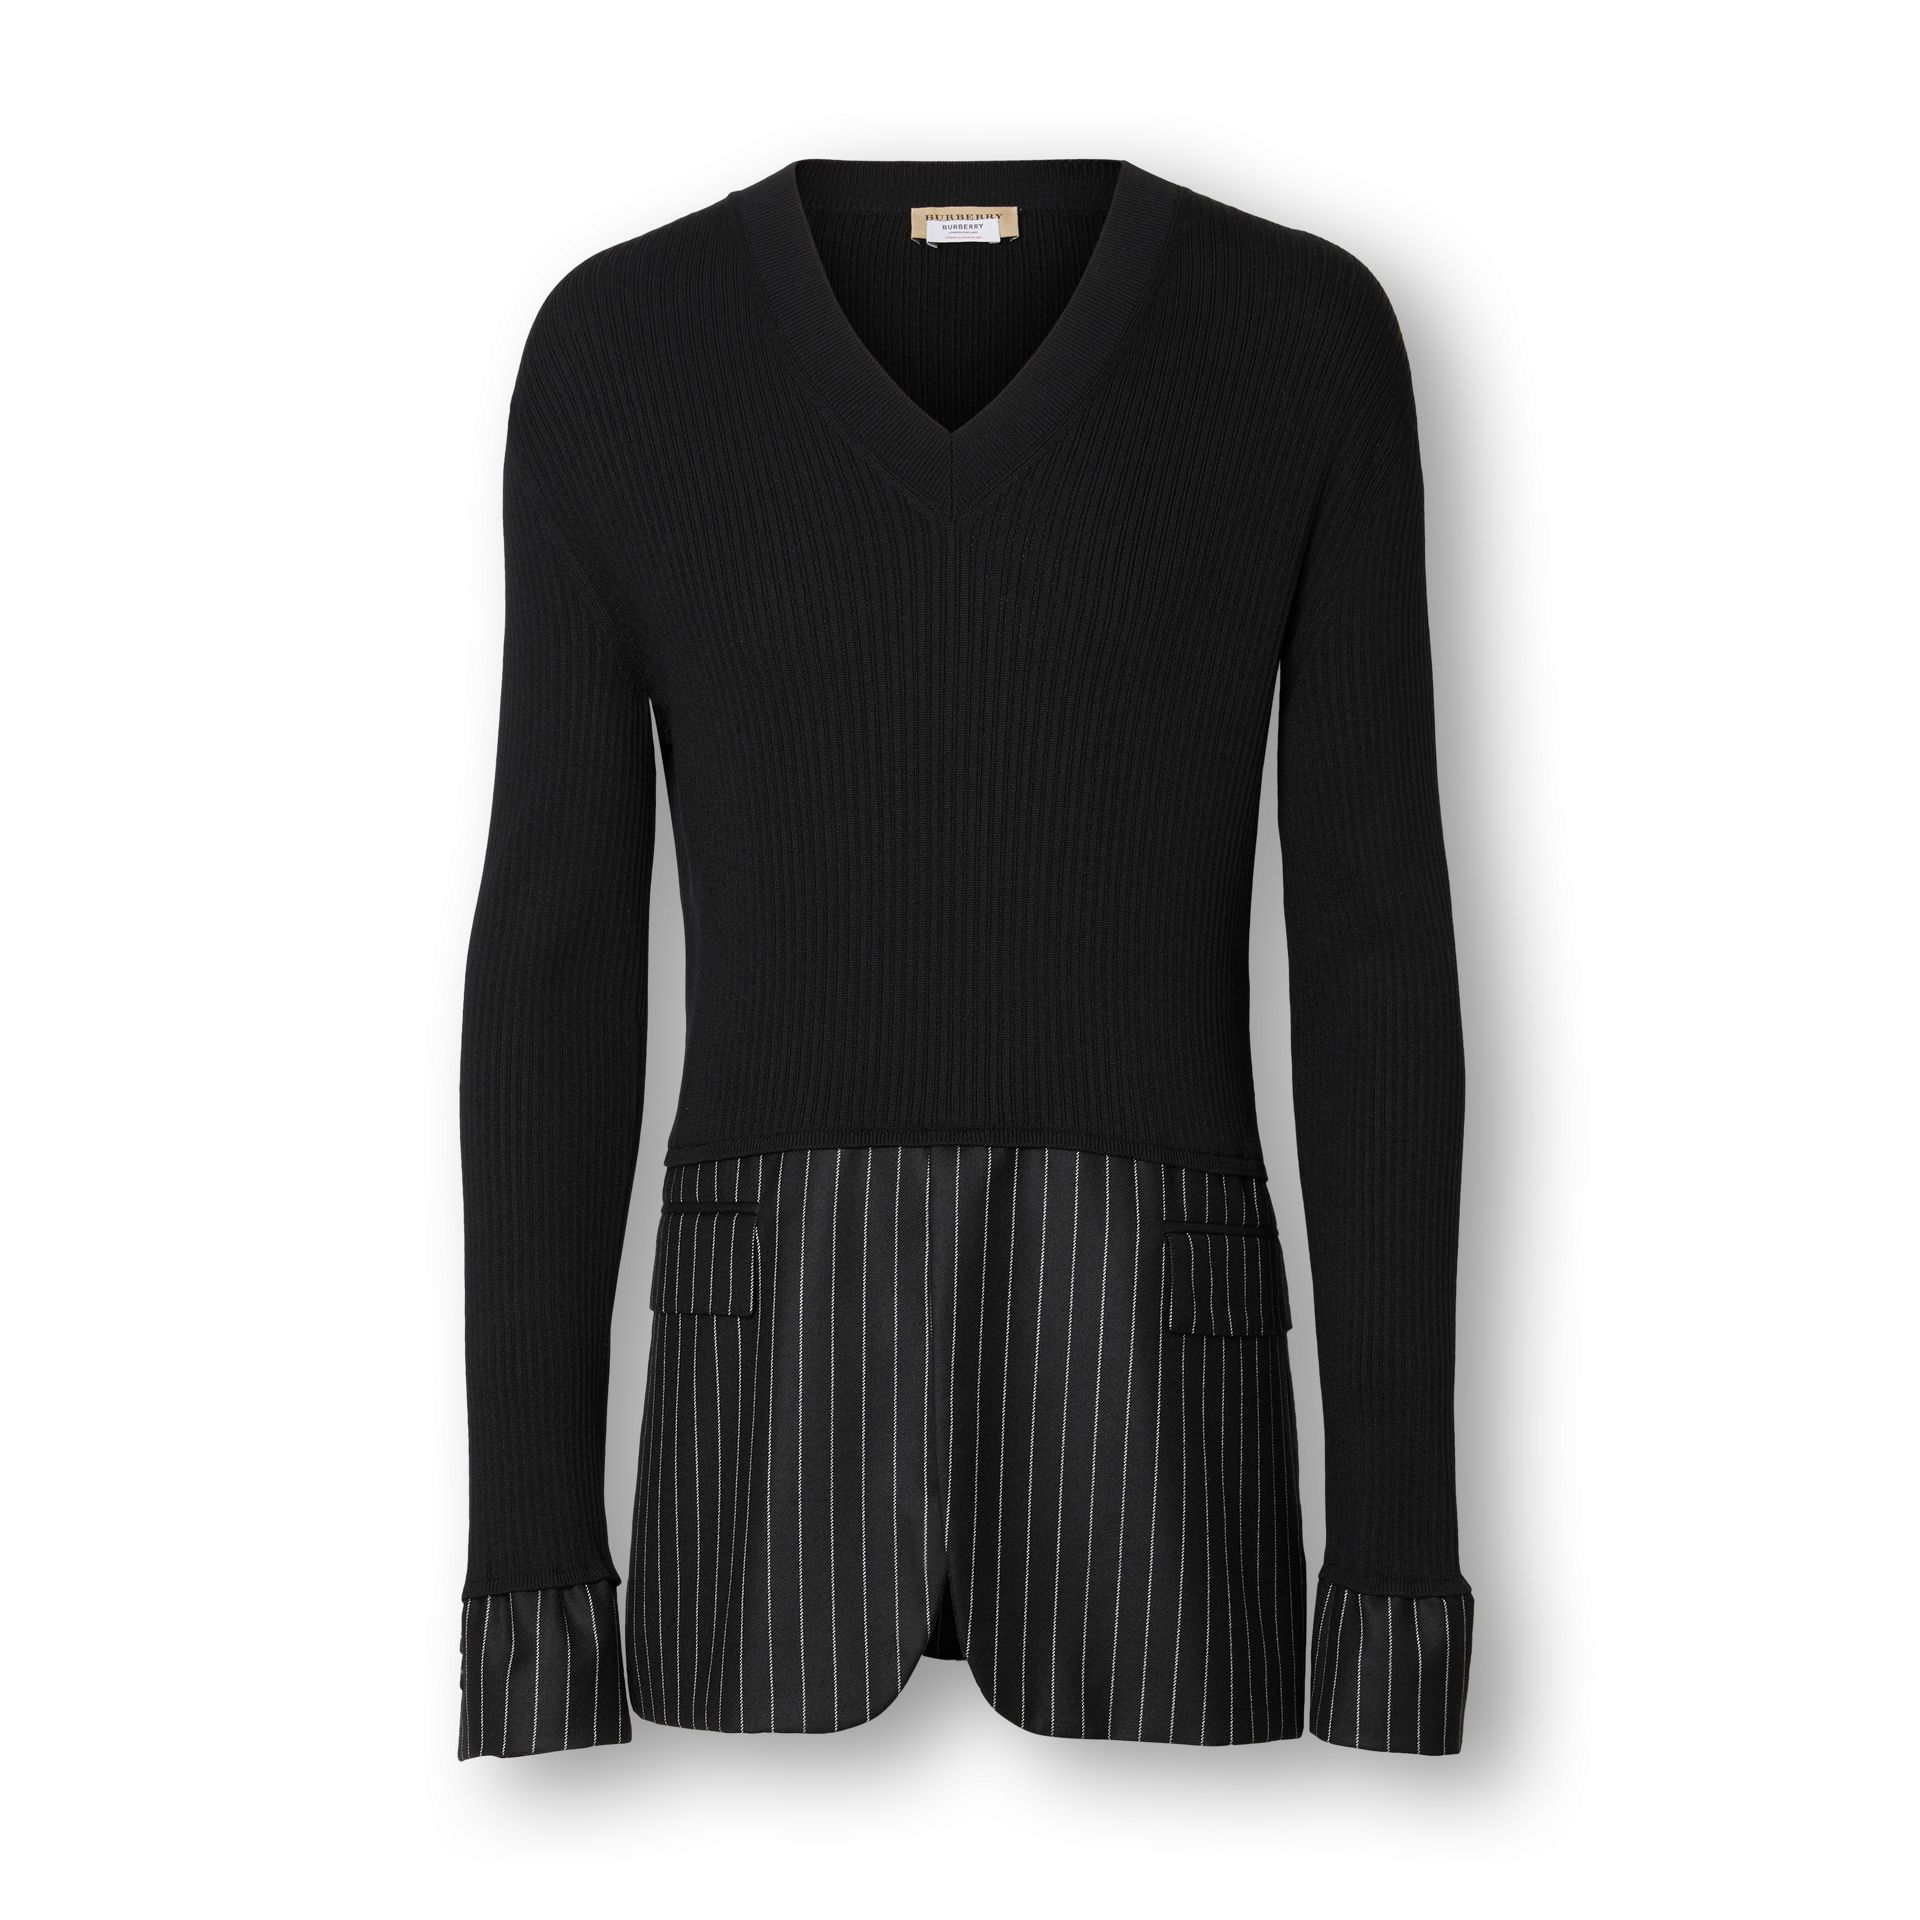 Tailored Panel Rib Knit Silk Blend Sweater in Black | Burberry - gallery image 3